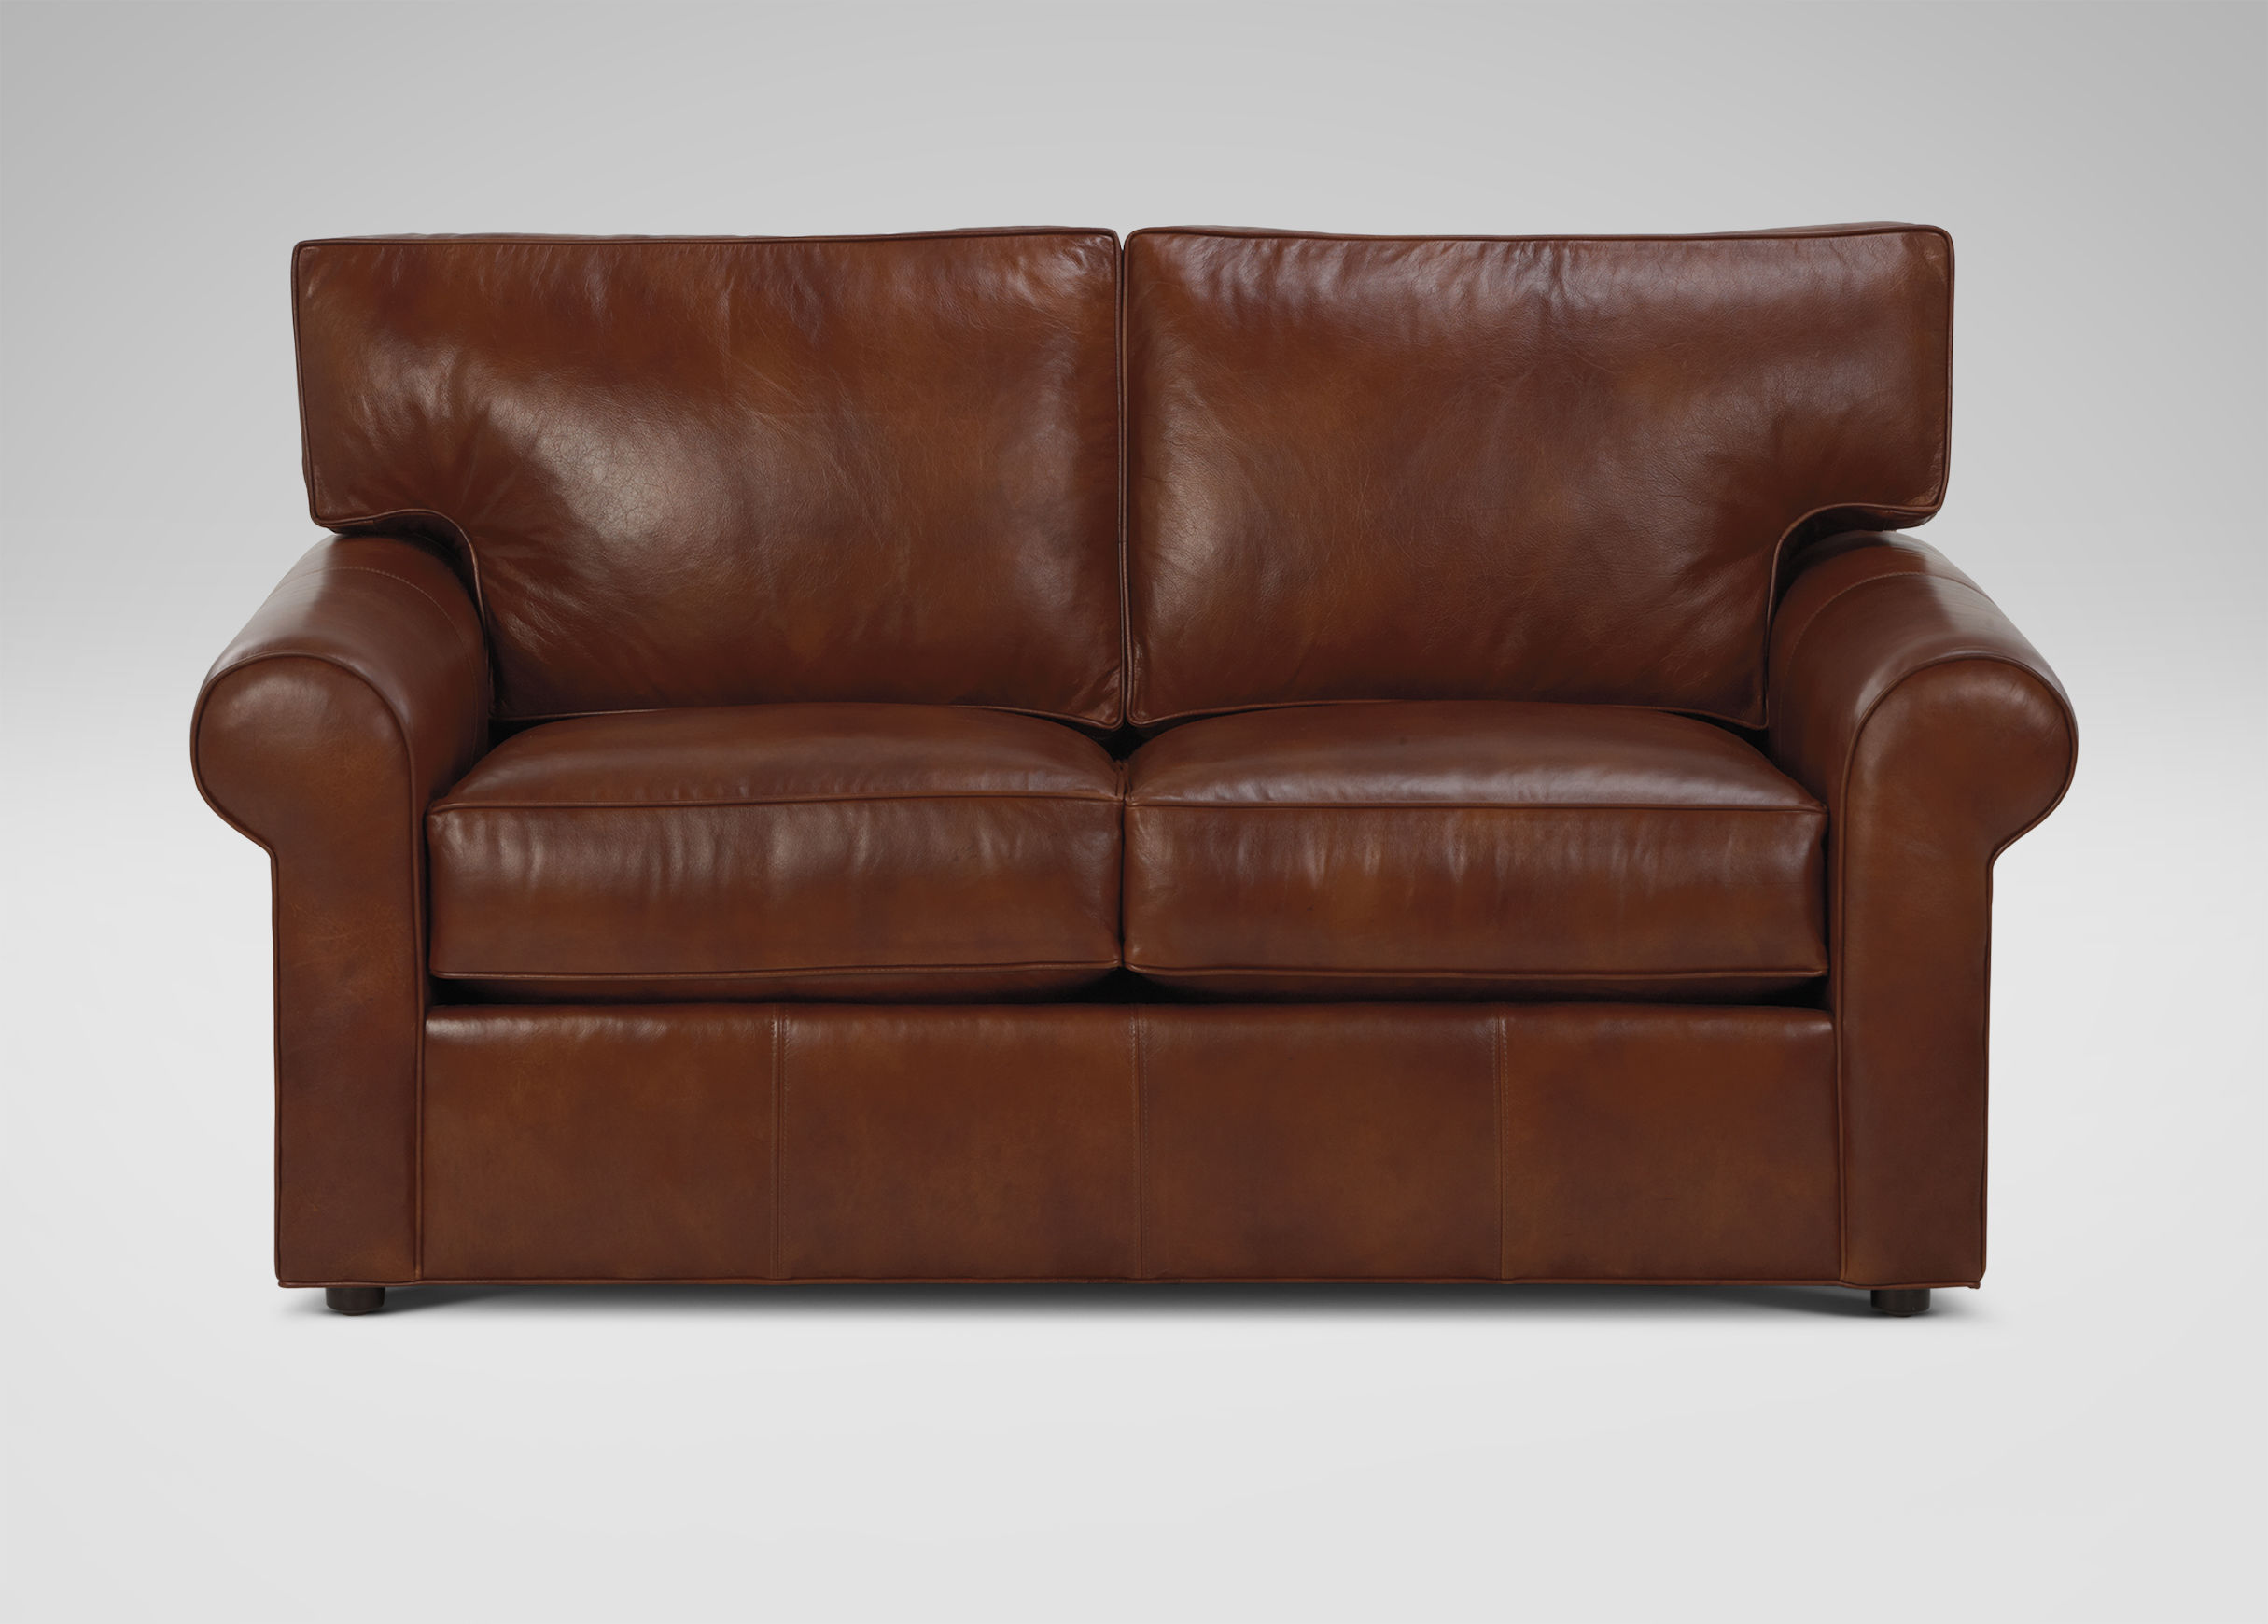 ethan allen leather furniture homesfeed On ethan furniture